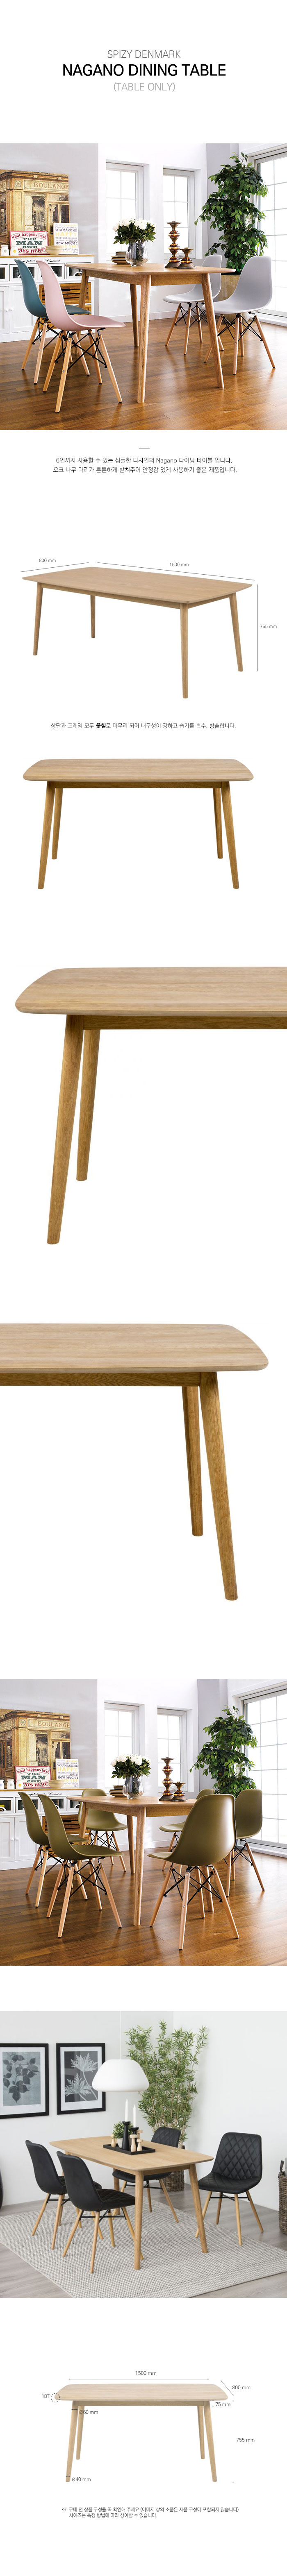 Nagano-Dining-Table_table-only.jpg